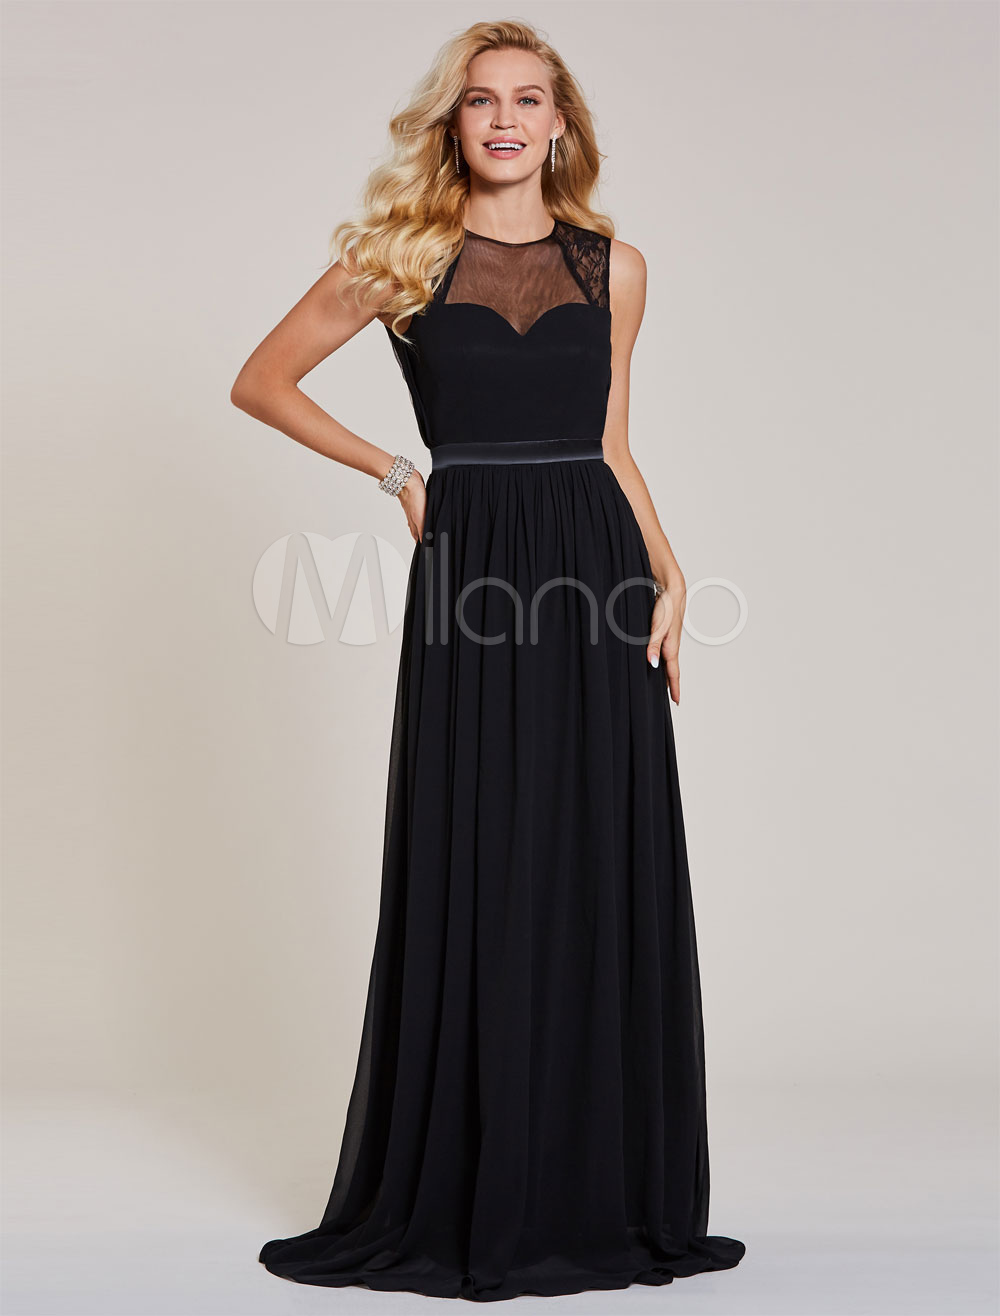 Buy Black Prom Dresses Chiffon Evening Gowns Keyhole Backless Sash Floor Length Formal Dress for $74.79 in Milanoo store